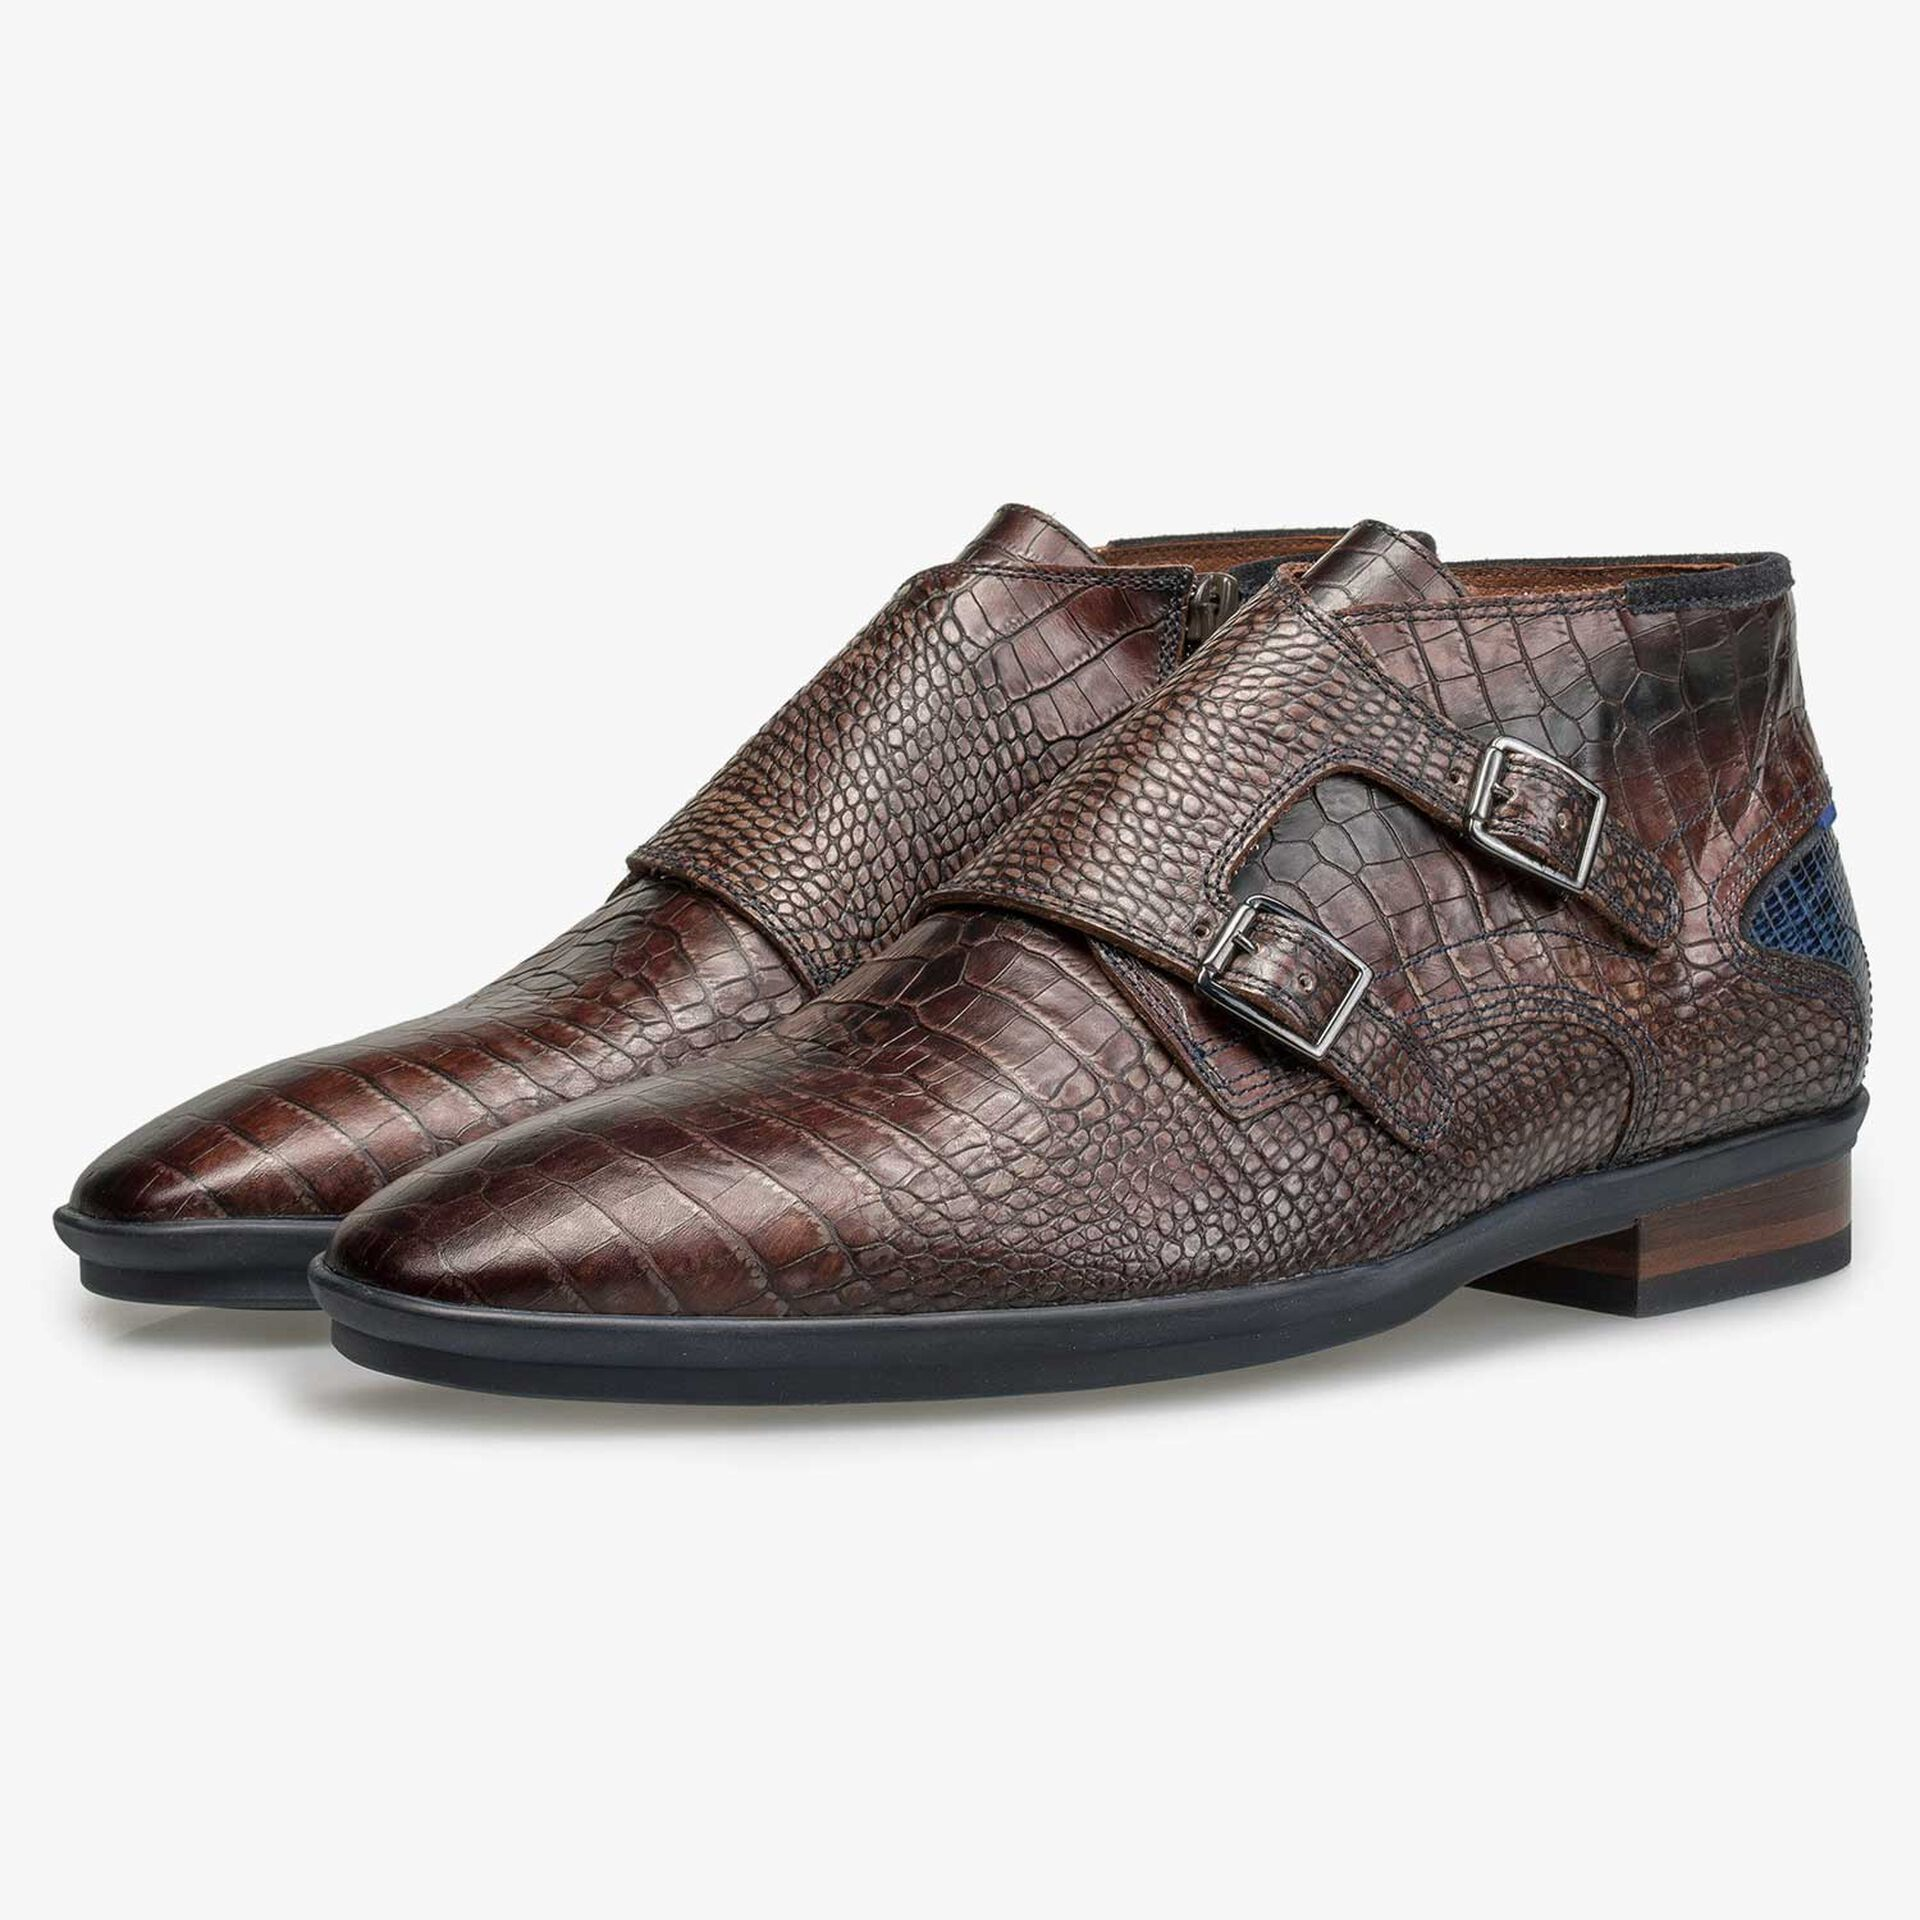 Dark brown buckled shoe with croco print